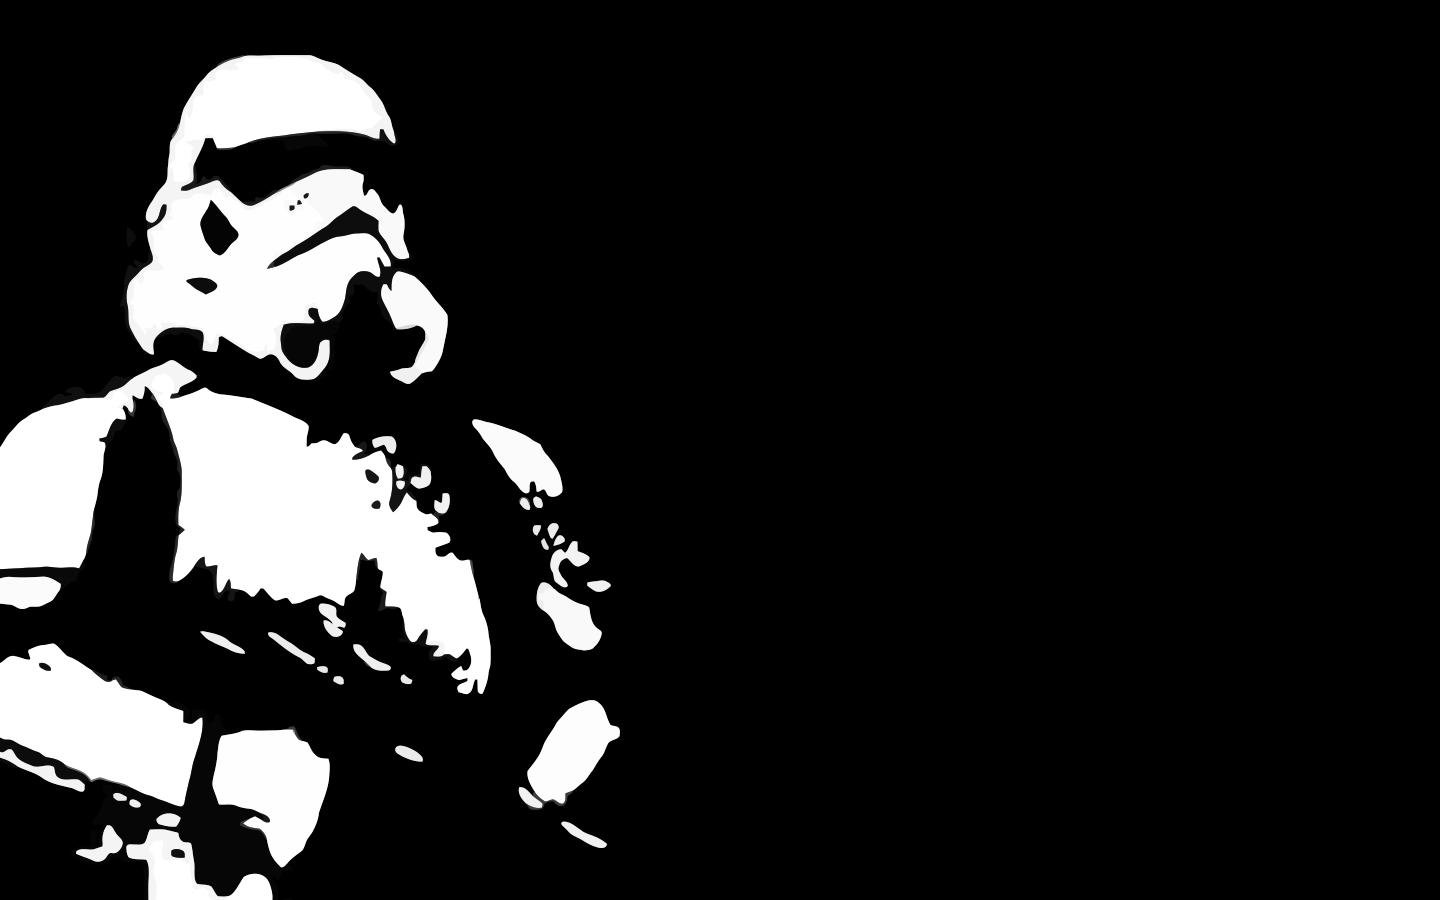 Cute Small Girl Wallpapers For Facebook Star Wars Stormtroopers Black Background Wallpaper